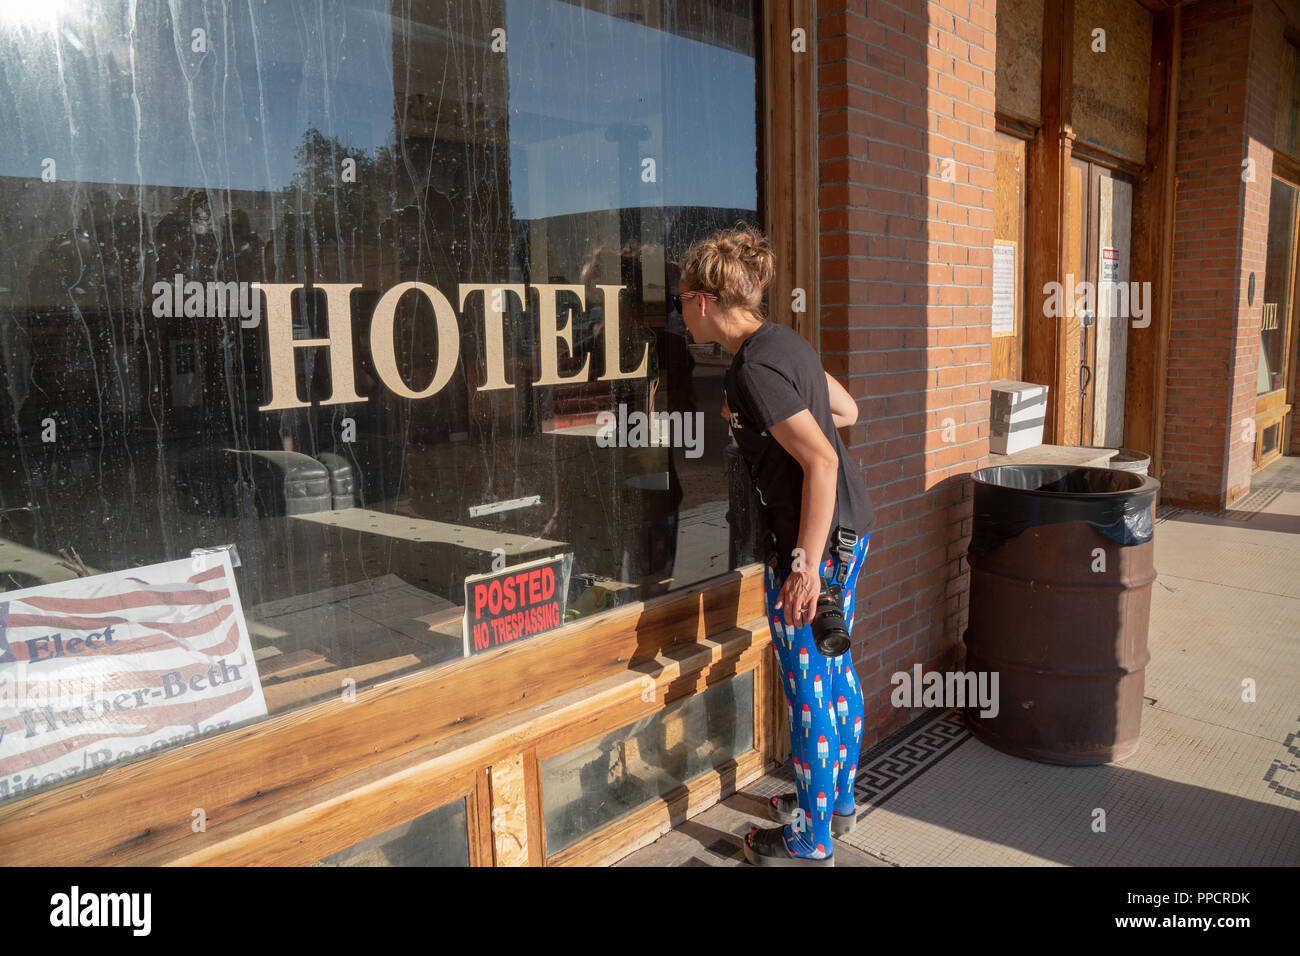 GOLDFIELD, NEVADA: A curious woman peers through the window of the abandoned and supposedly haunted Goldfield Hotel, an historic building along US 95 - Stock Image